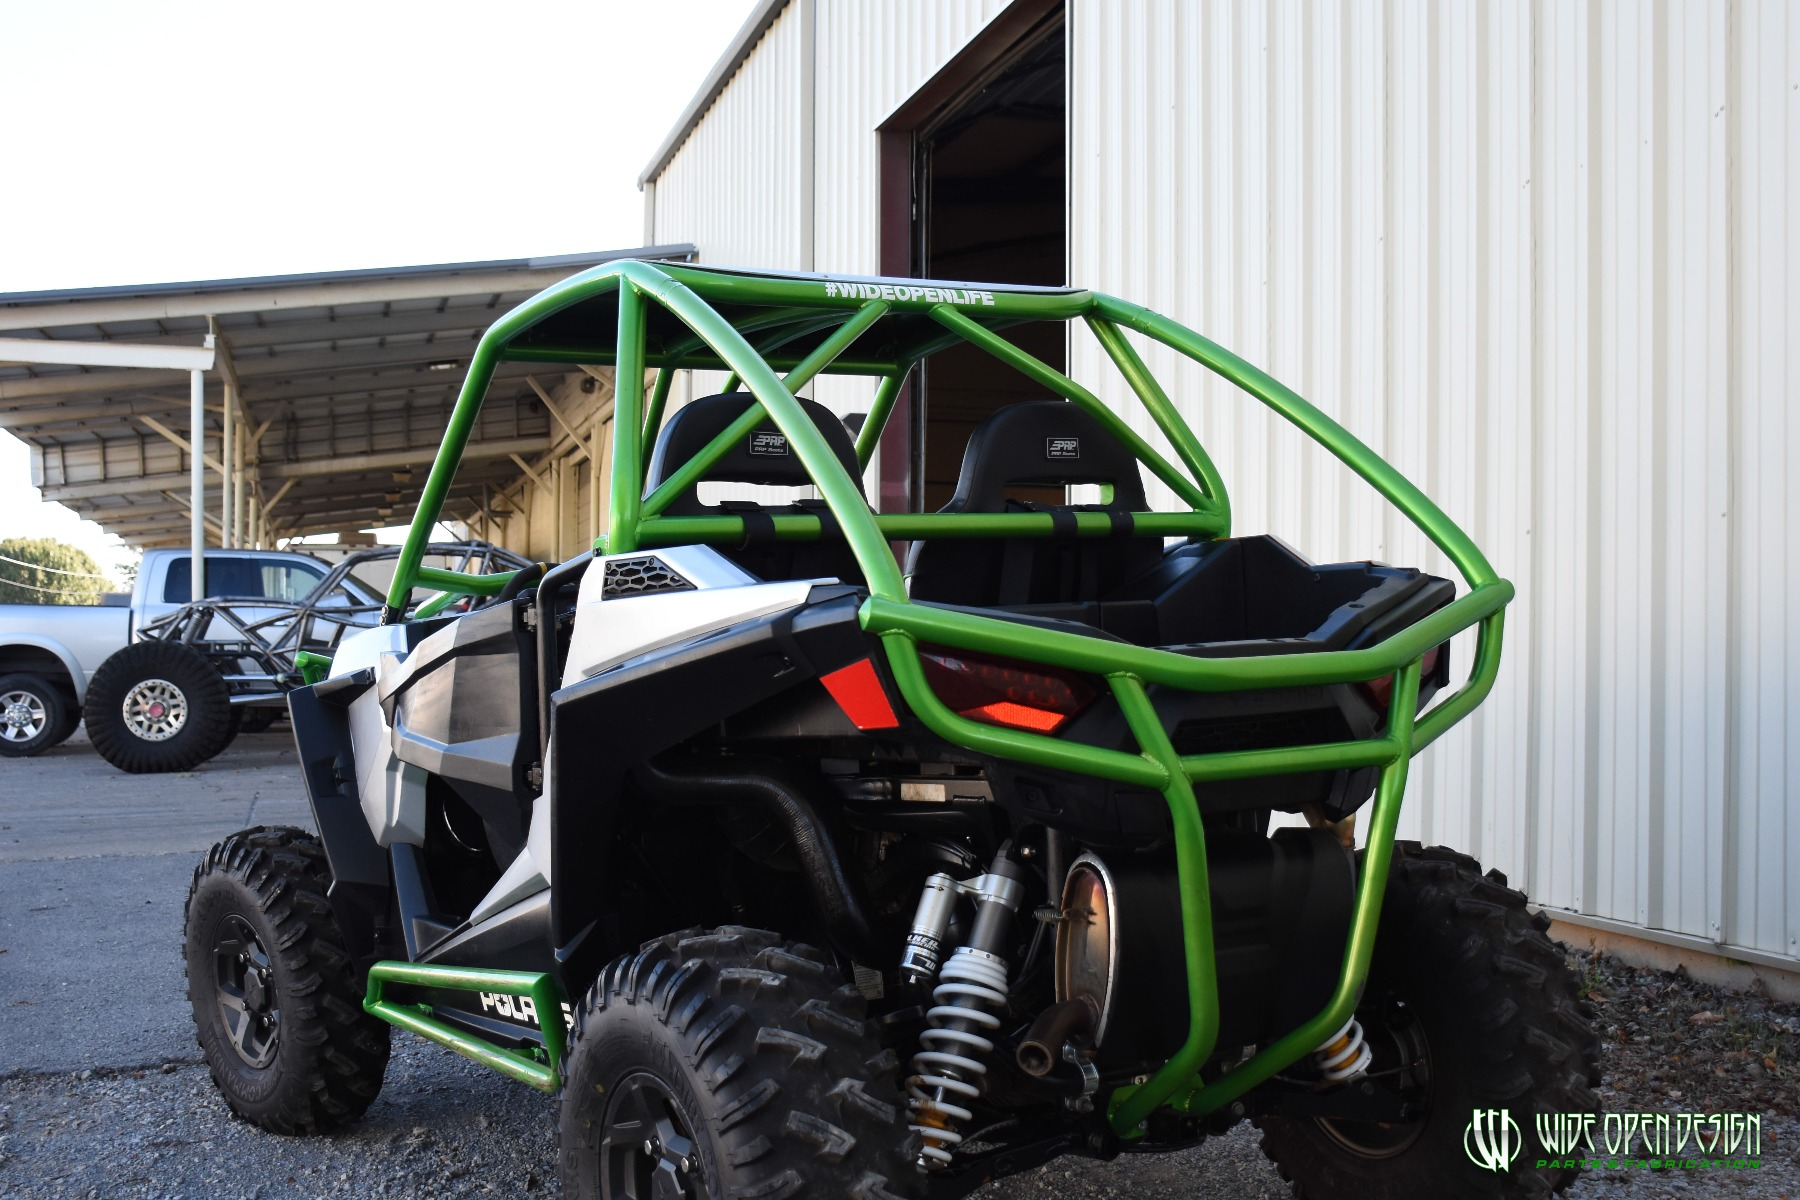 Jason's 1000s RZR with Wide Open Design Rolled Roof Cage, Front Bumper with Tie In, and Rocker Guards 32